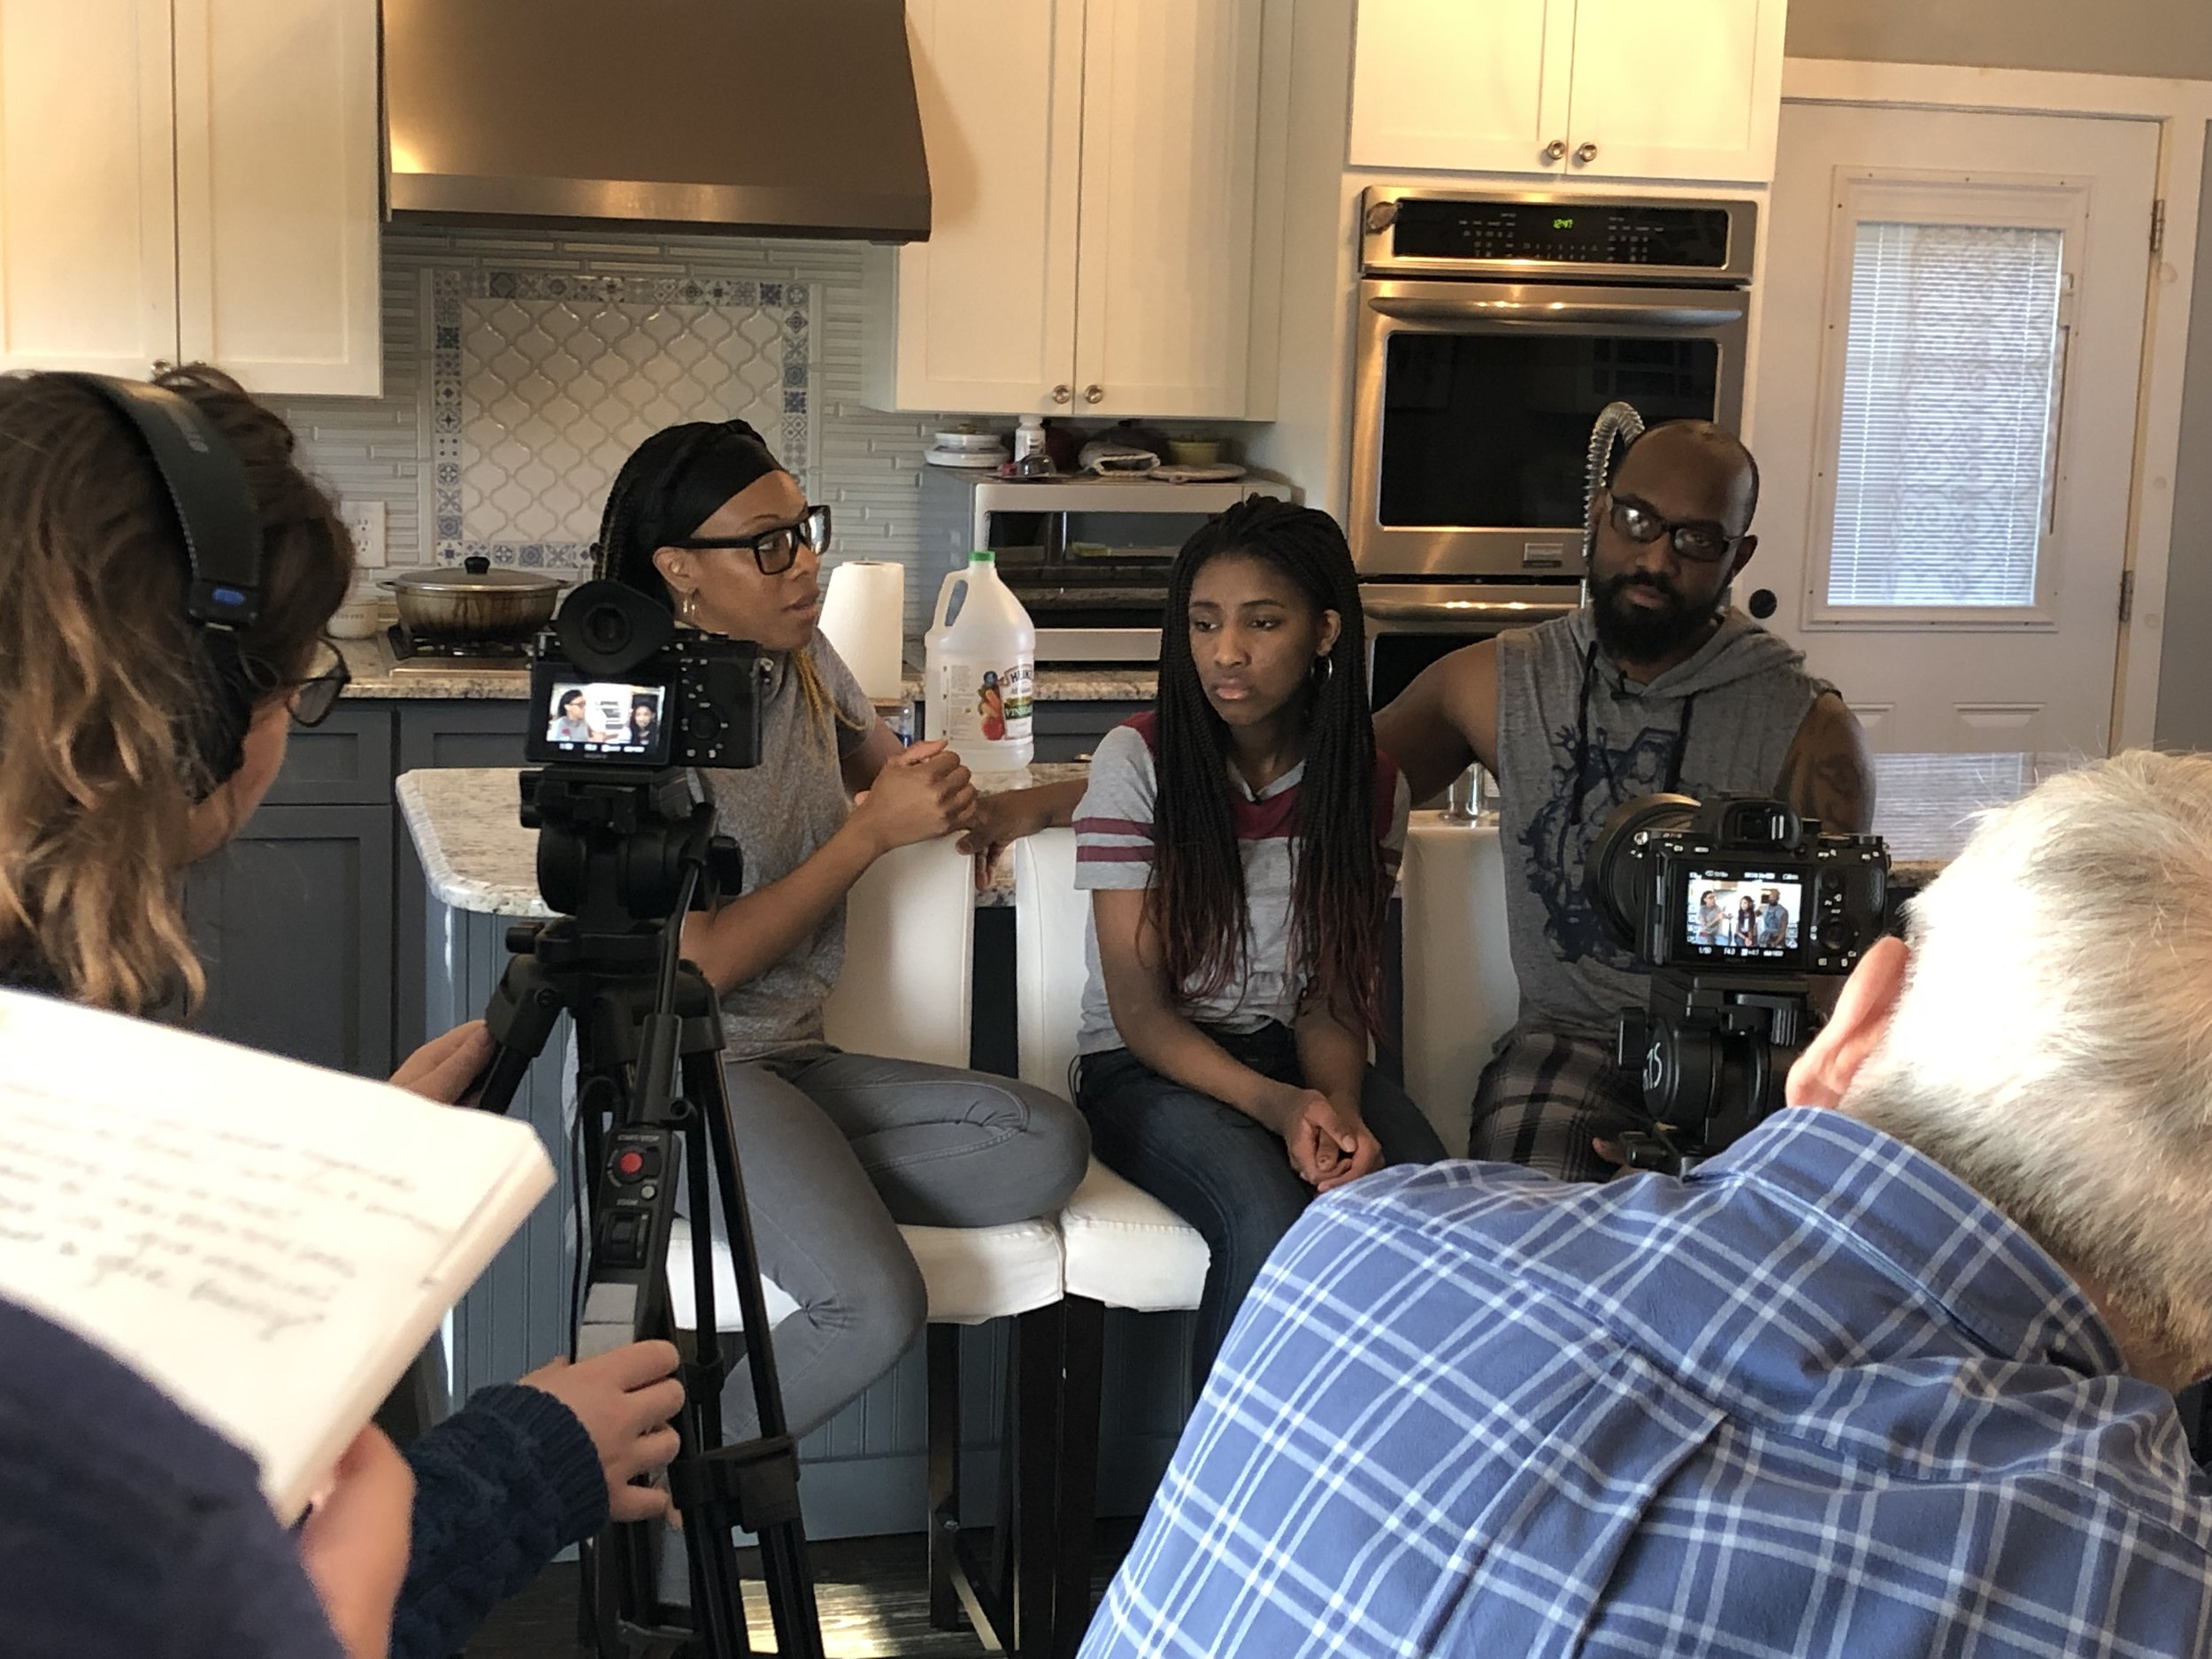 Emilia   Figliomeni (left) and Paul Rochford, Jr (right) film an interview with the Powell family during their cooking session.